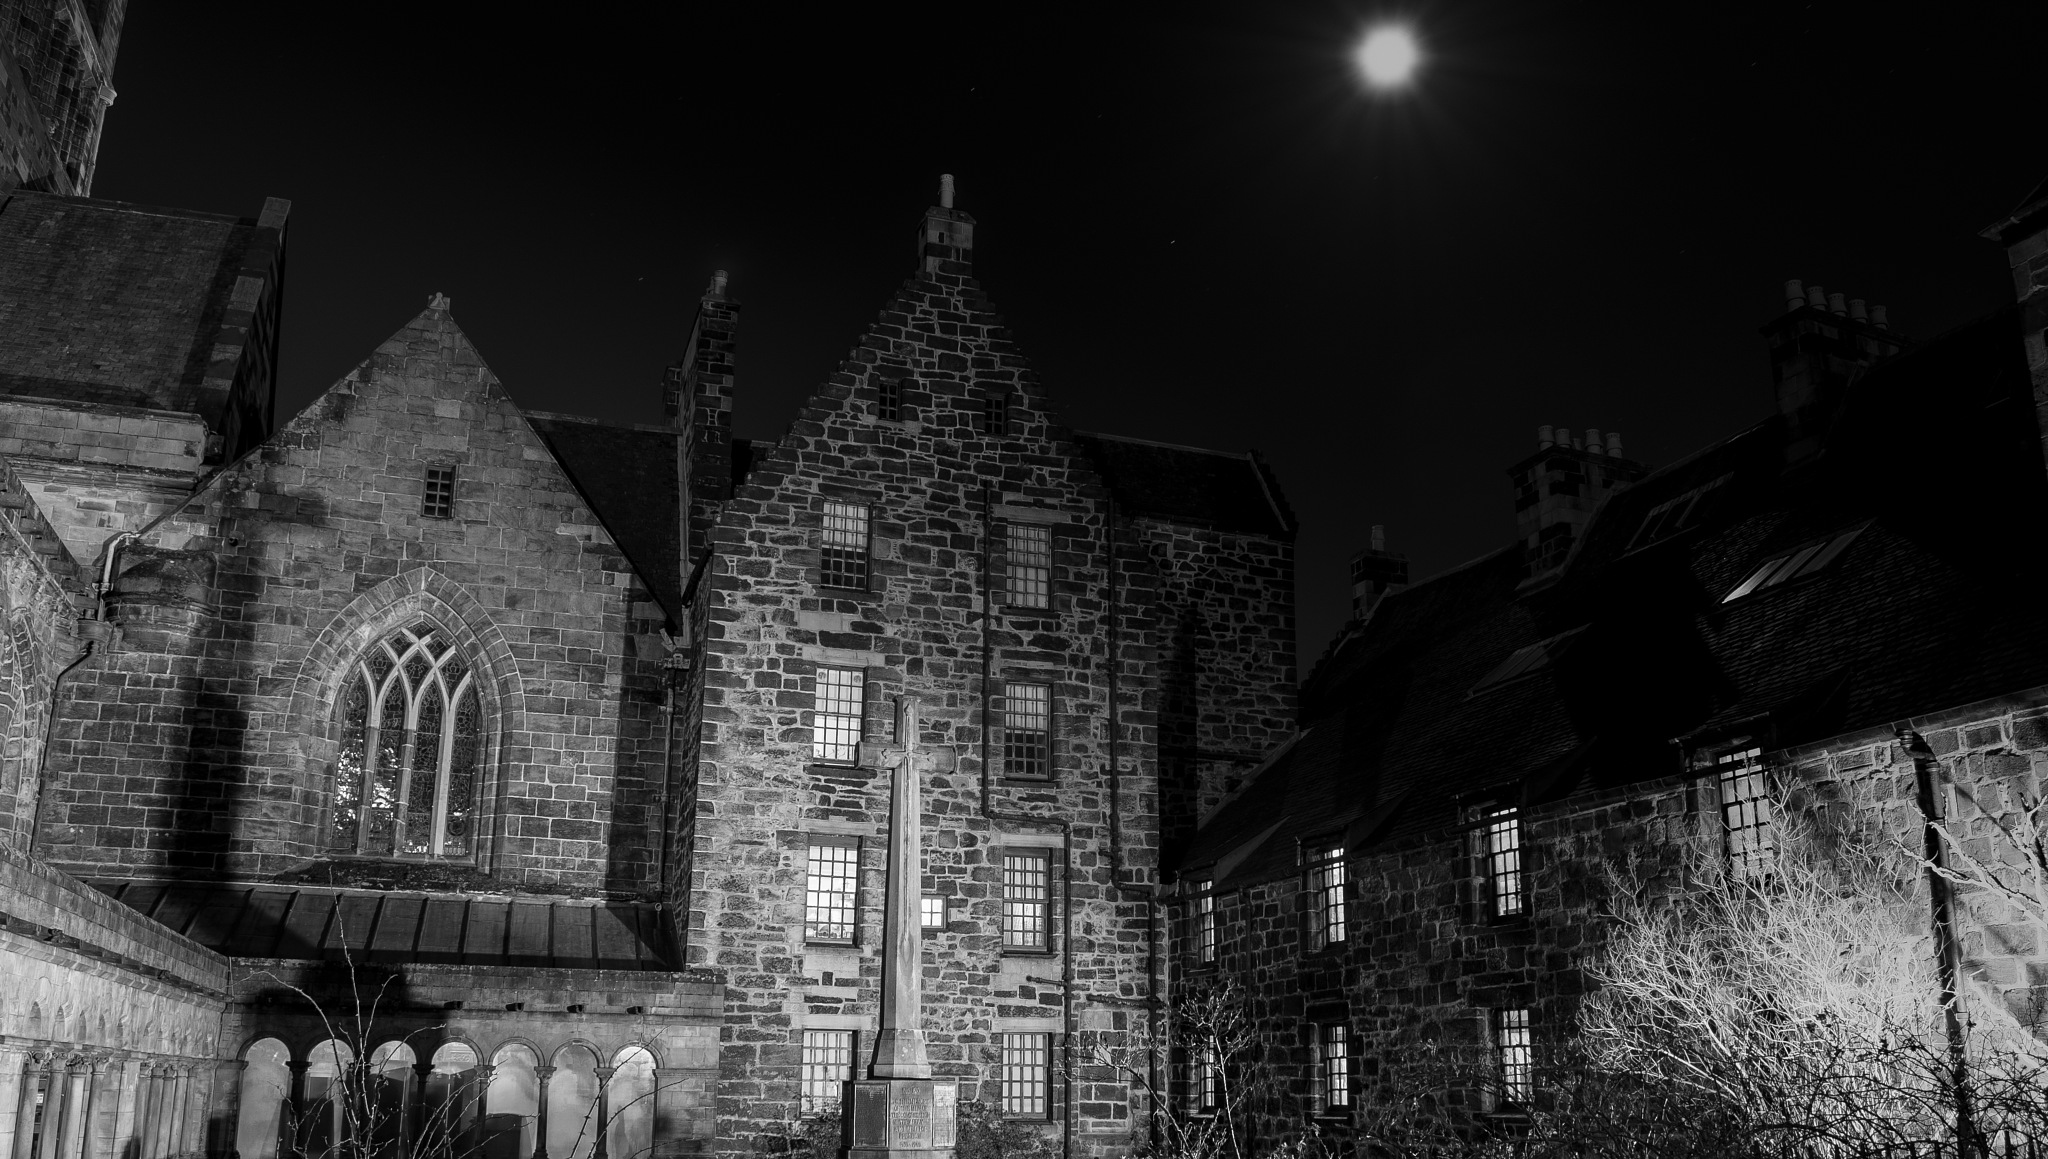 Abbey by Moonlight by storm